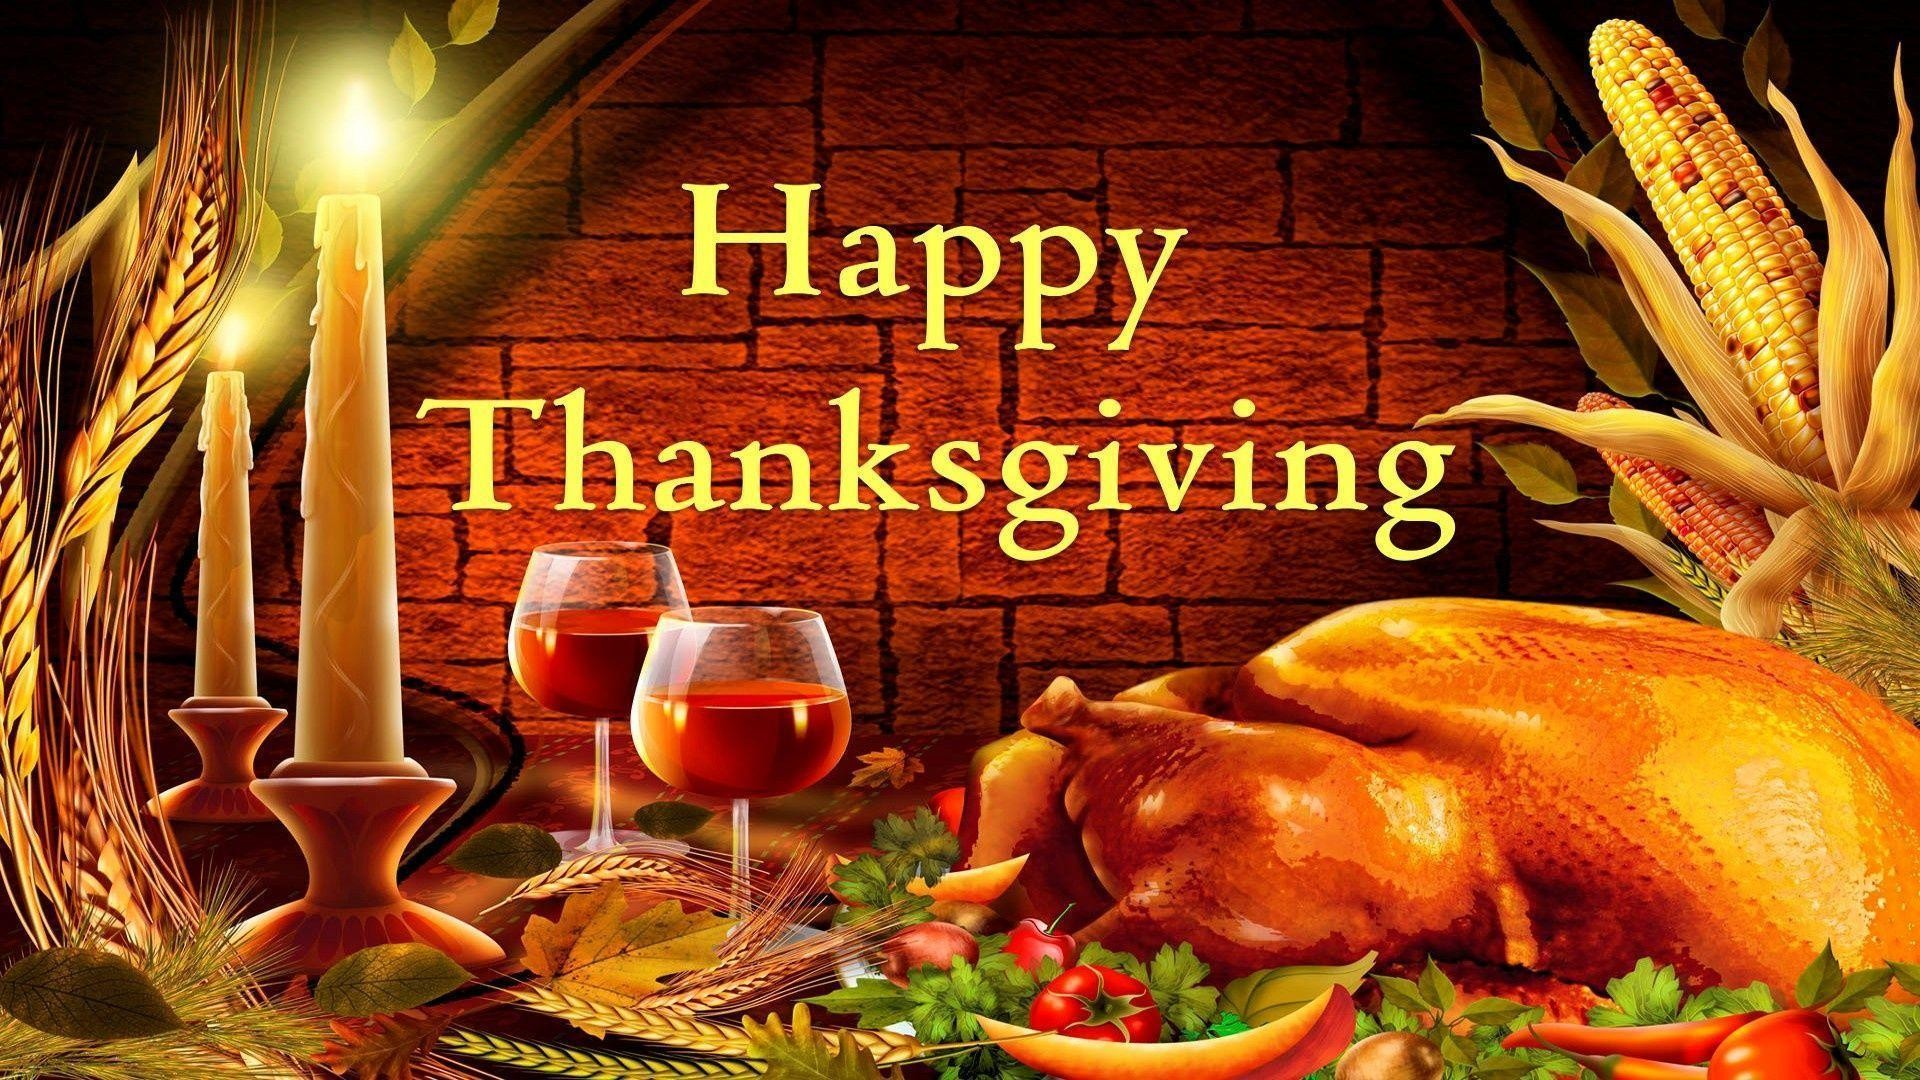 Happy Thanksgiving Wallpaper 70 Images